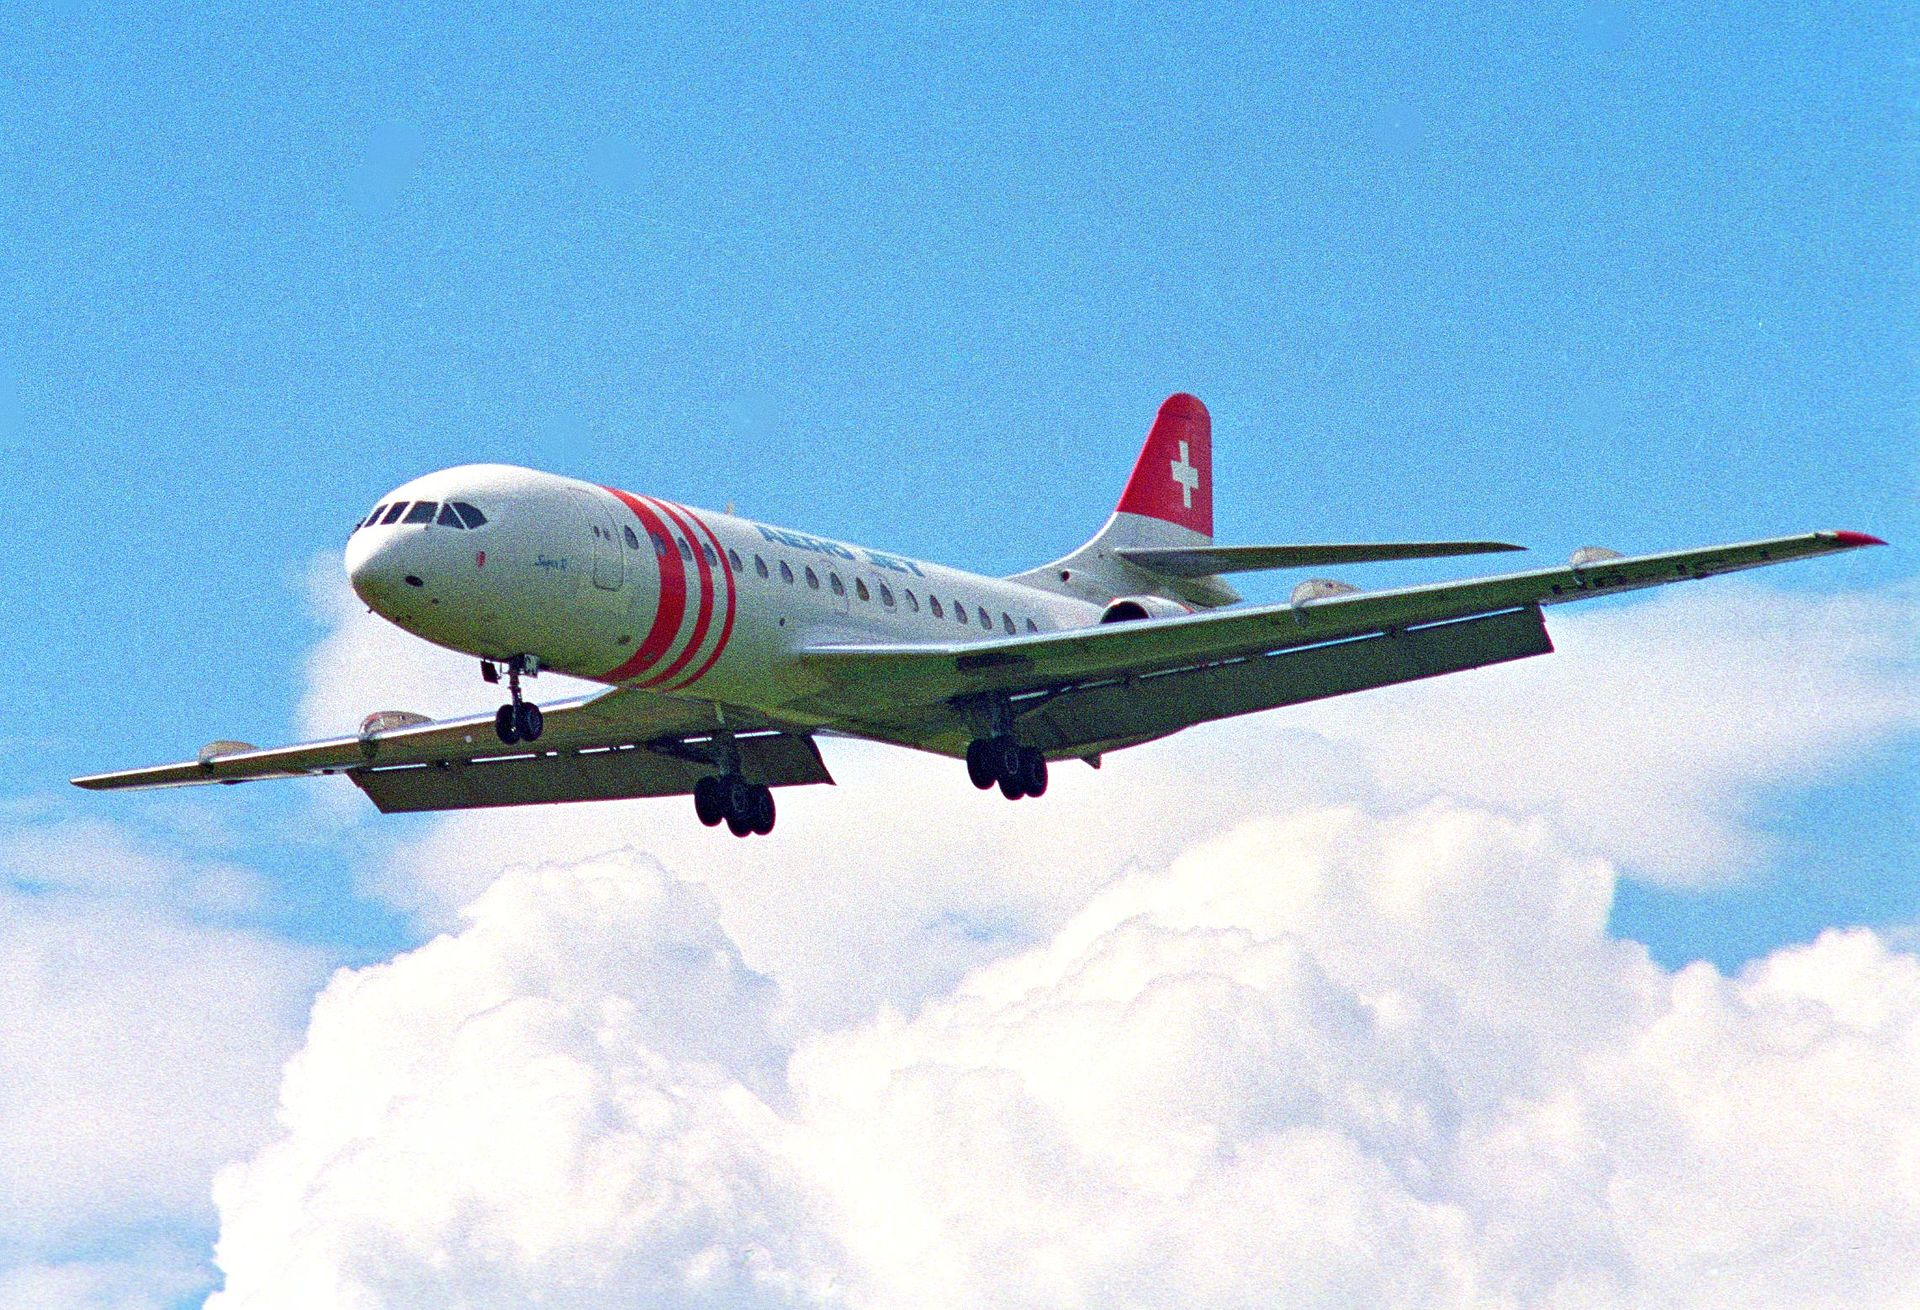 Sud Aviation Caravelle Wikimedia Commons